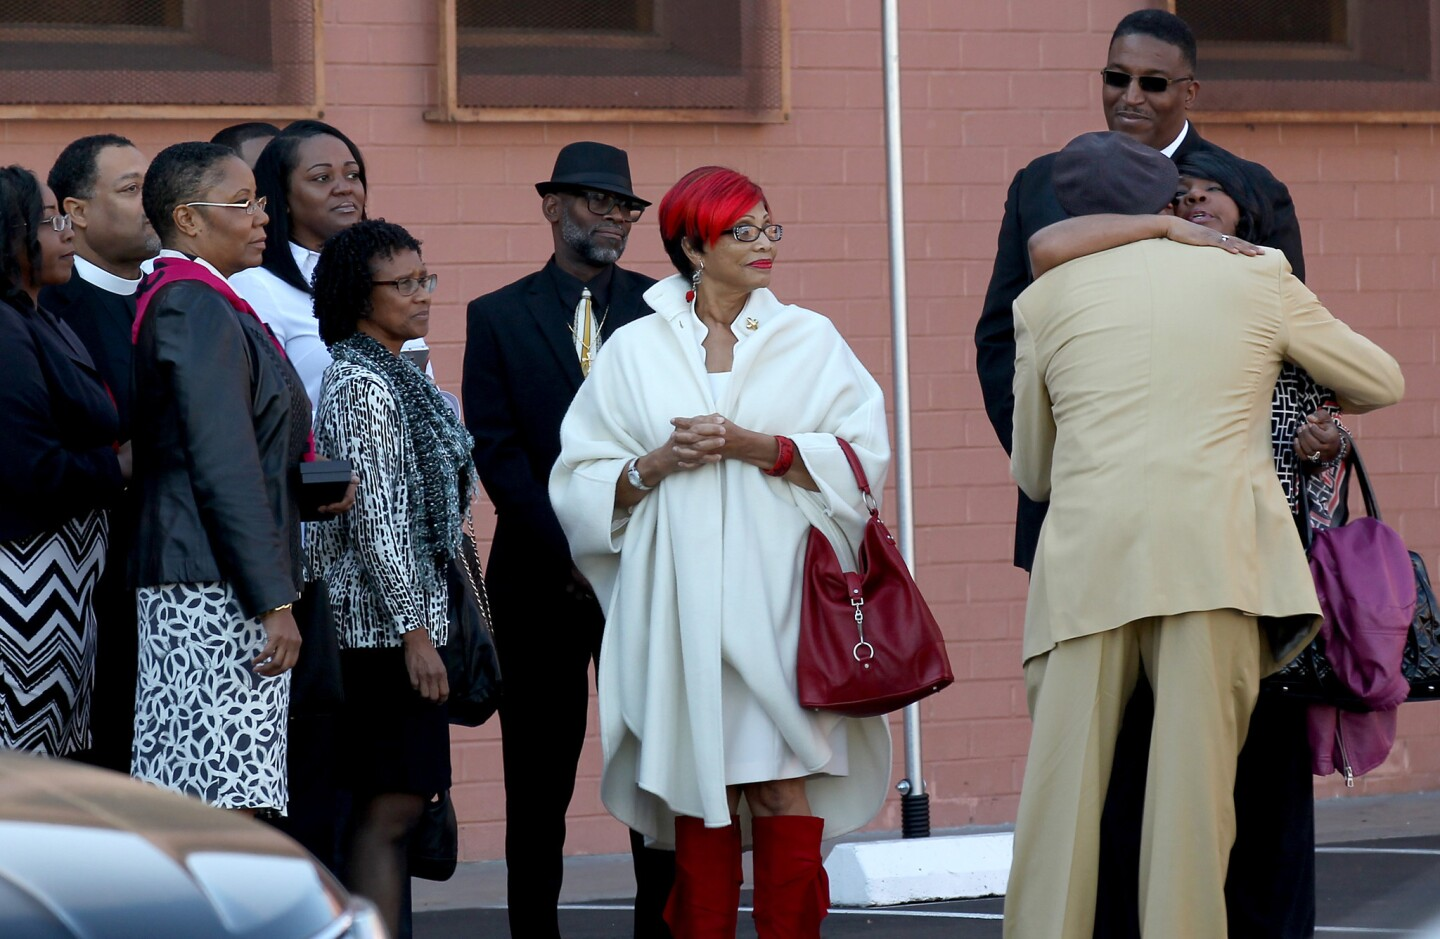 Friends and relatives of Sierra Clayborn gather for her funeral at Mt. Moriah Missionary Baptist Church in South Los Angeles.